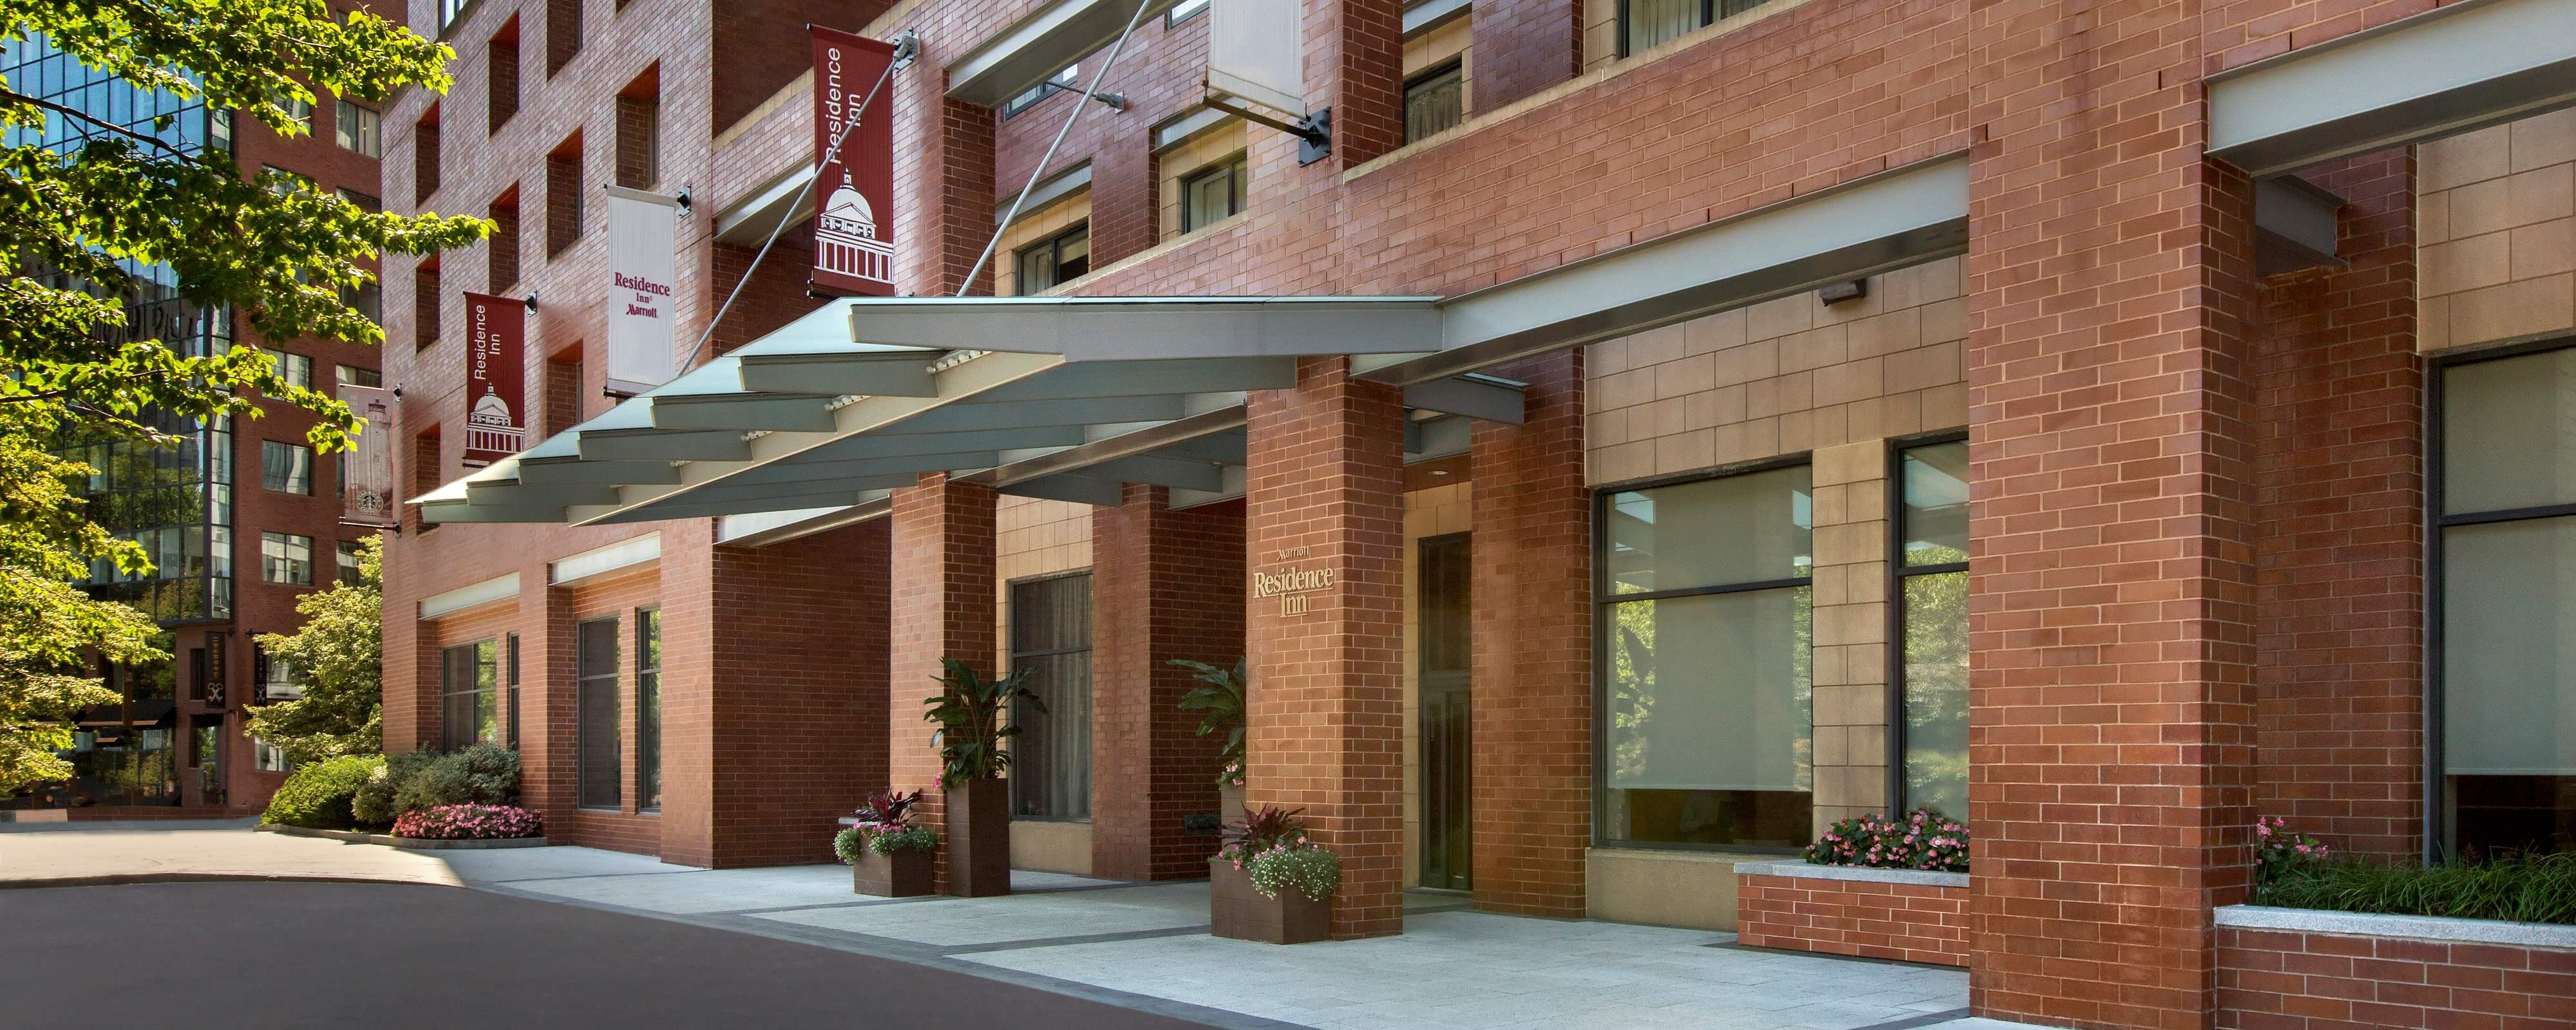 Cambridge, MA Hotels near Somerville, MA | Residence Inn Boston ...